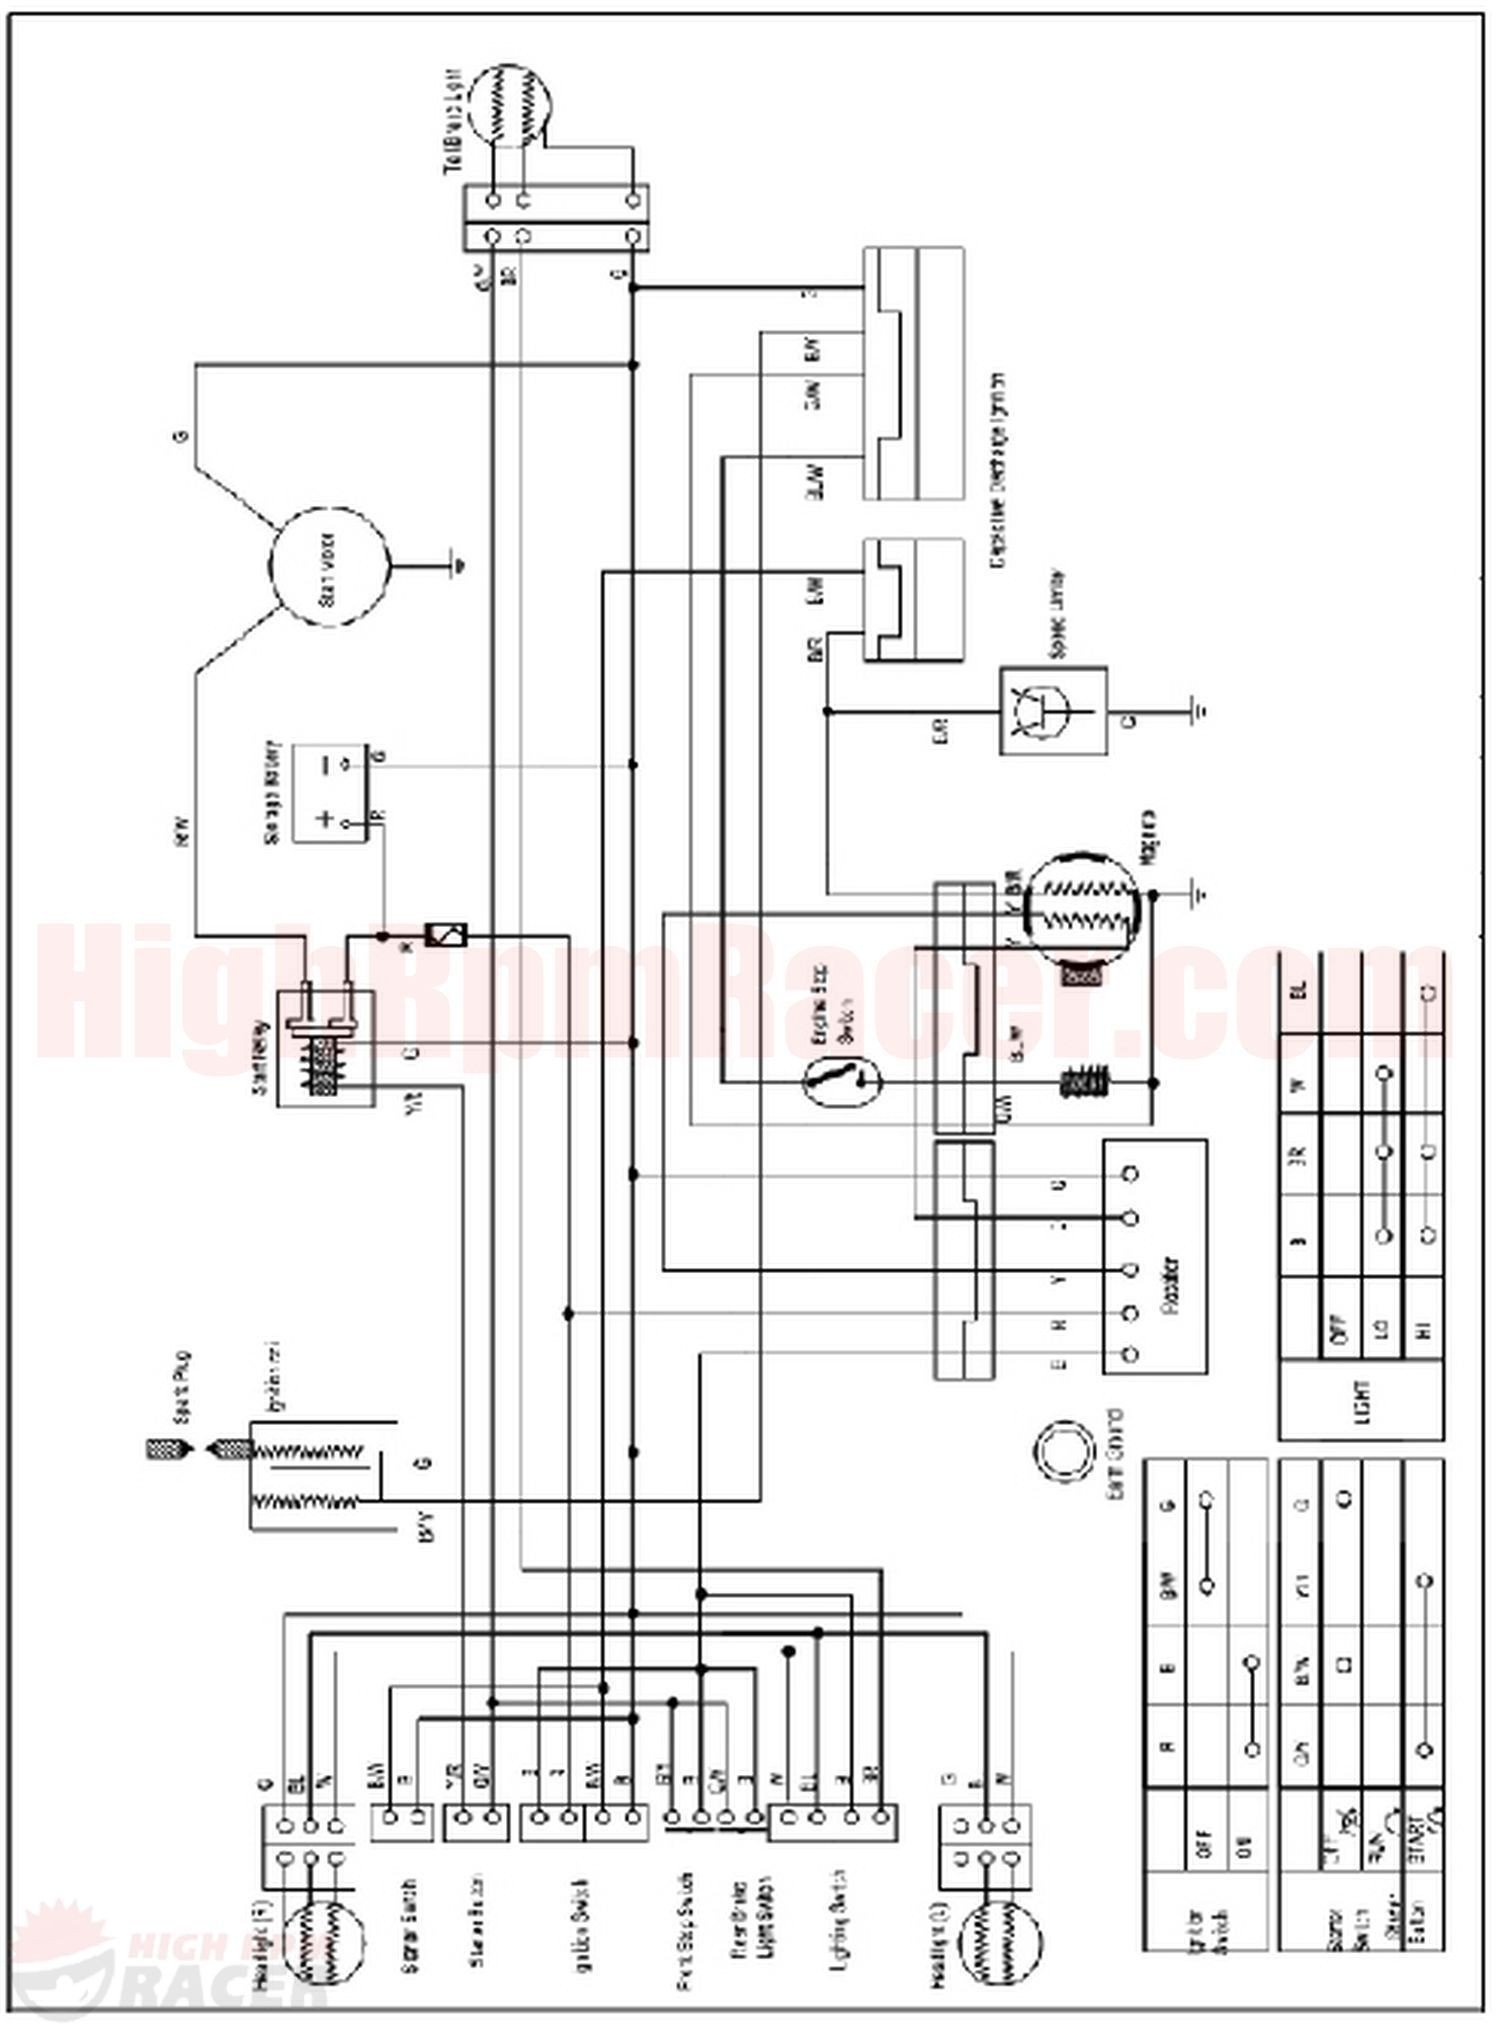 derbi senda 50 wiring diagram titanic class 50cc engine m2 igesetze de baja 90 schematic rh 119 twizer co